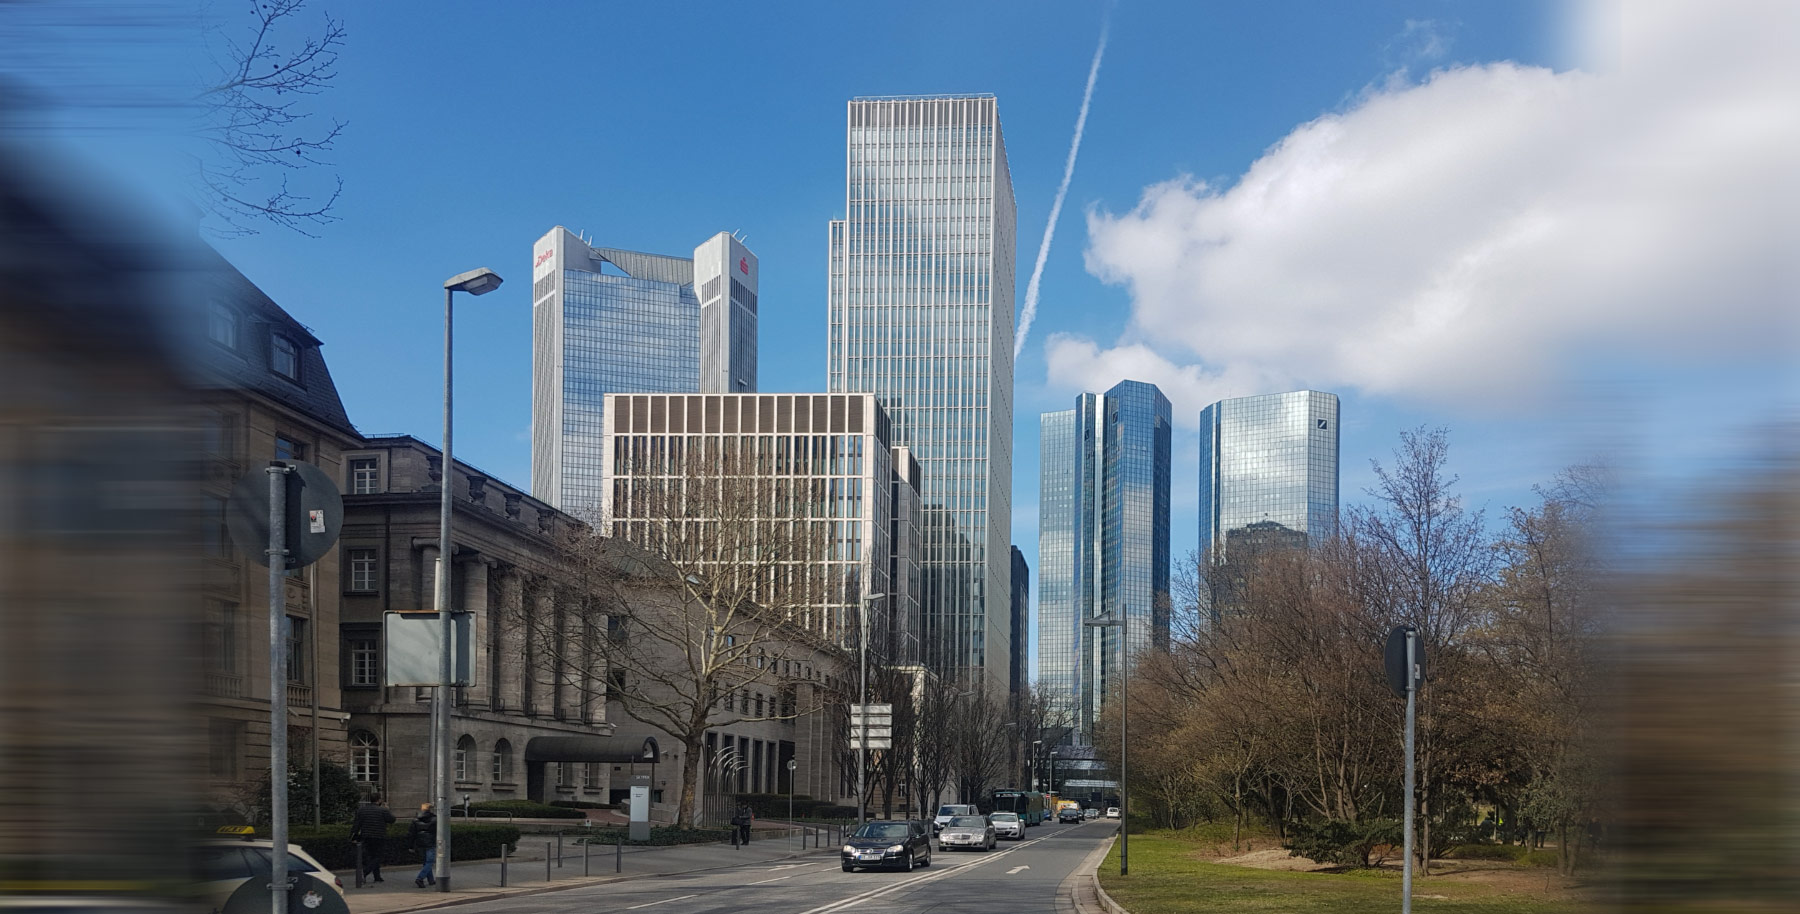 Marienturm office tower in Frankfurt CBD 2019 - New Goldman Sachs German Headquarters Building